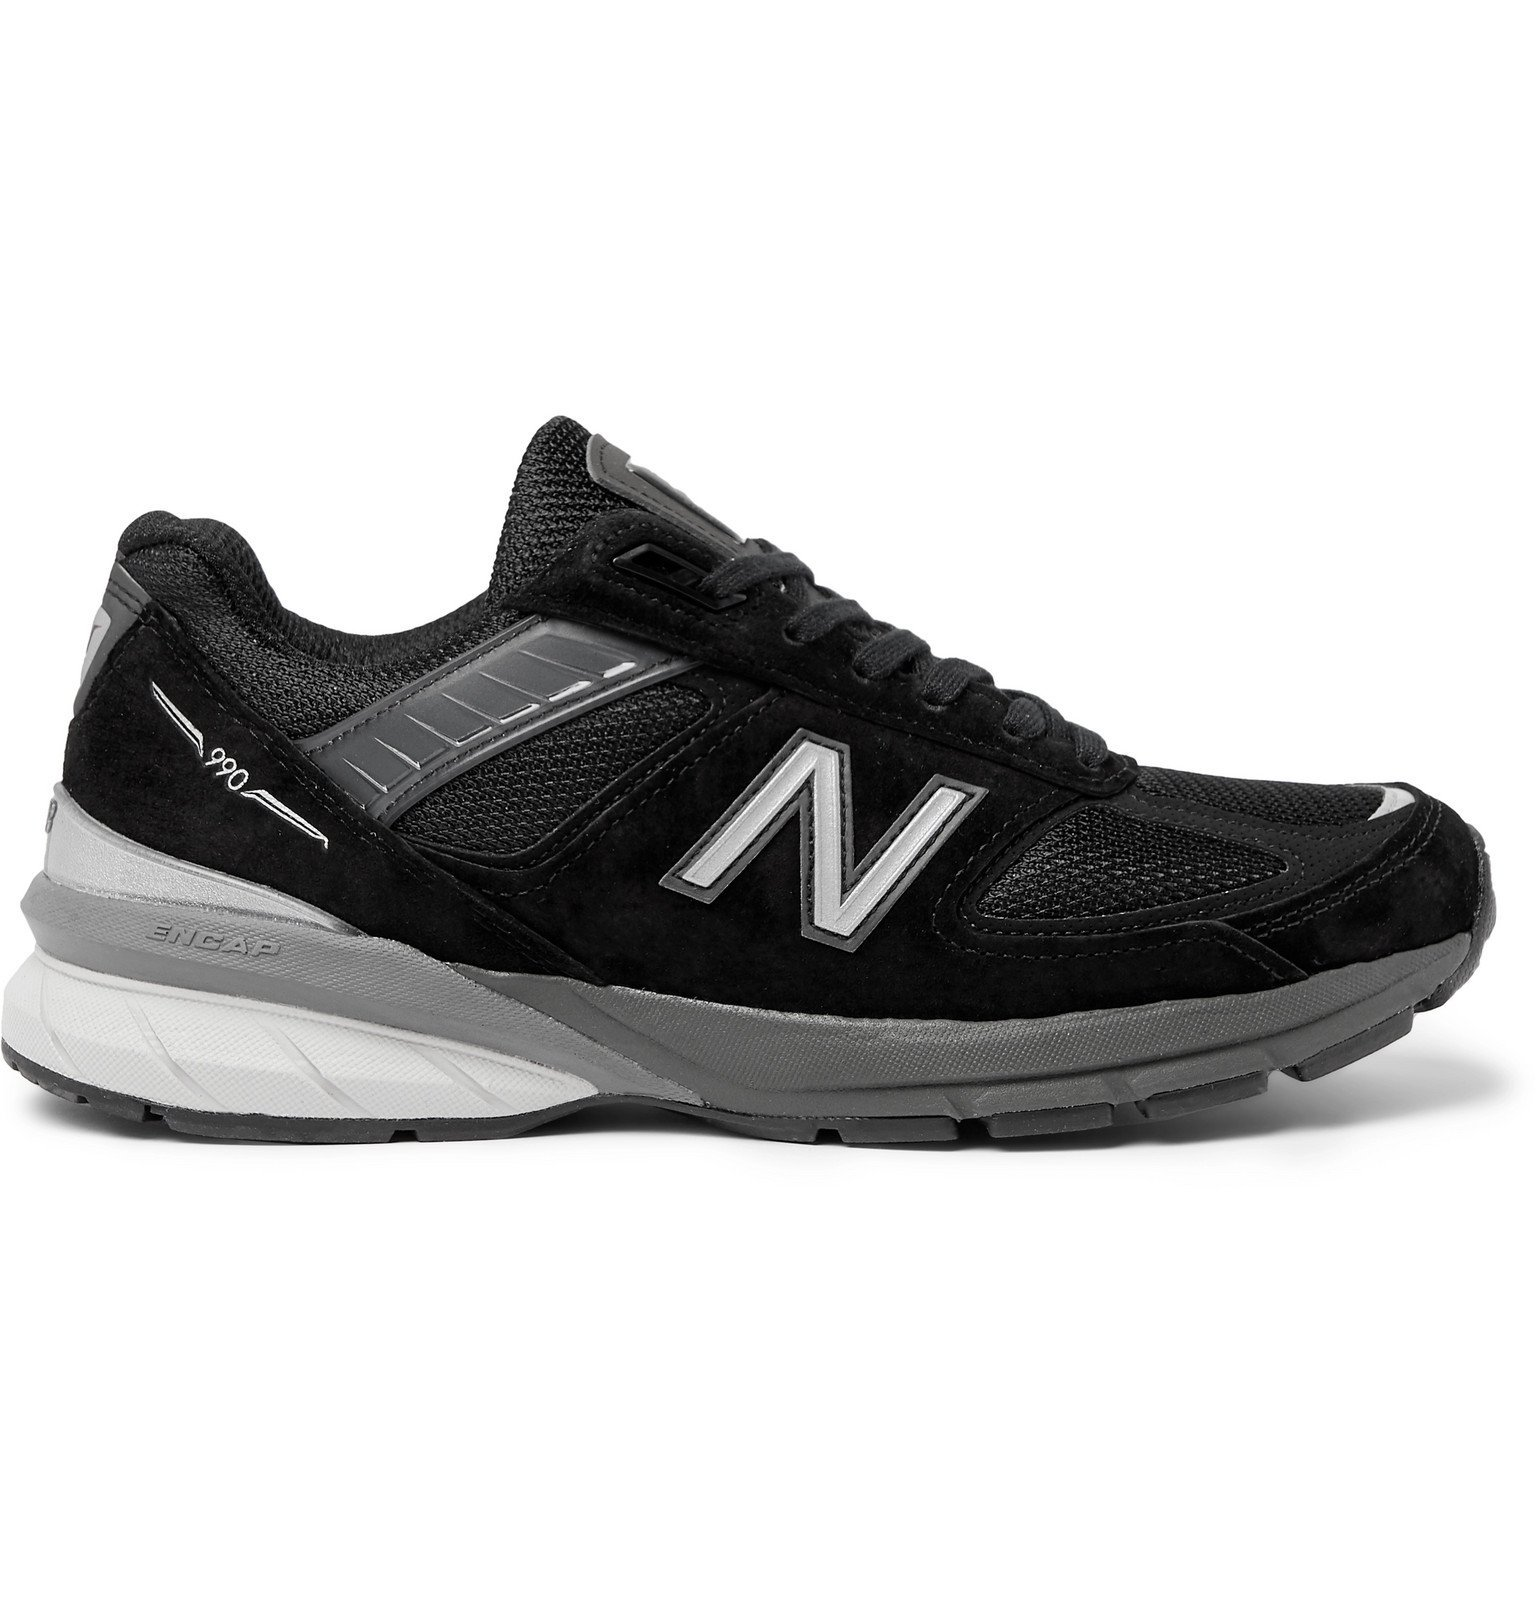 New Balance - M990V5 Suede and Mesh Sneakers - Black